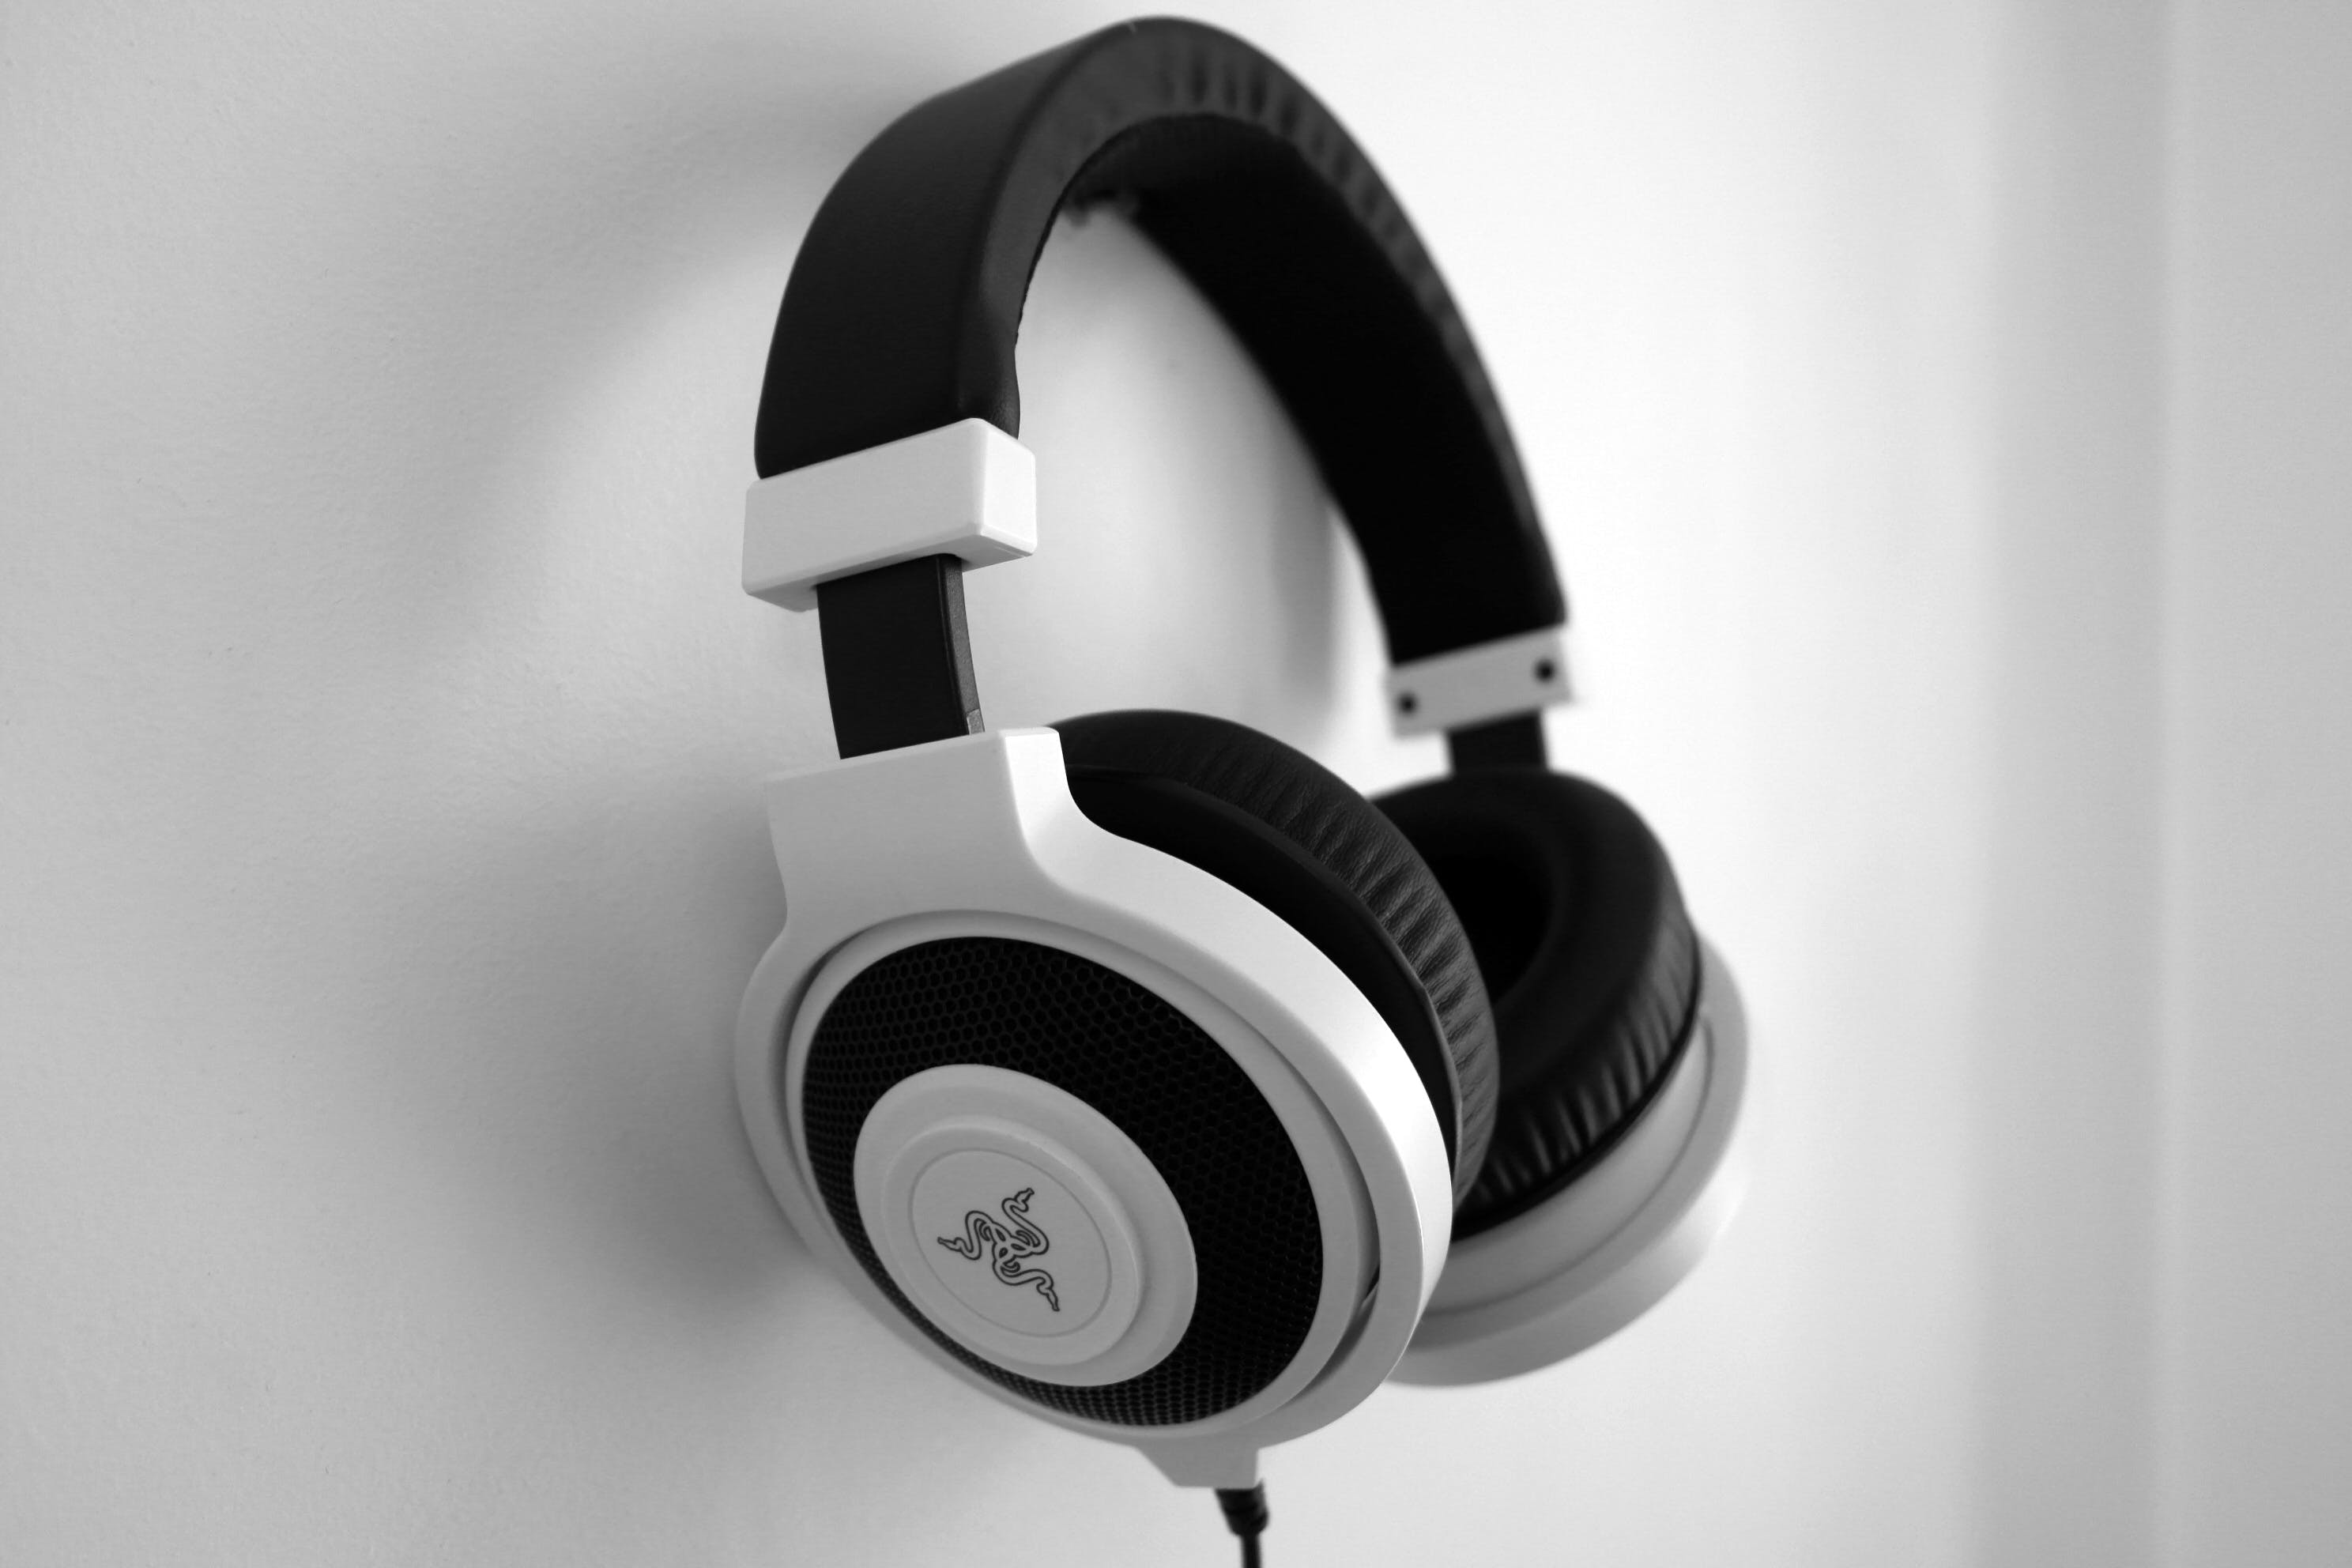 Black and White Razer Gaming Headset Hanging on White Painted Wall